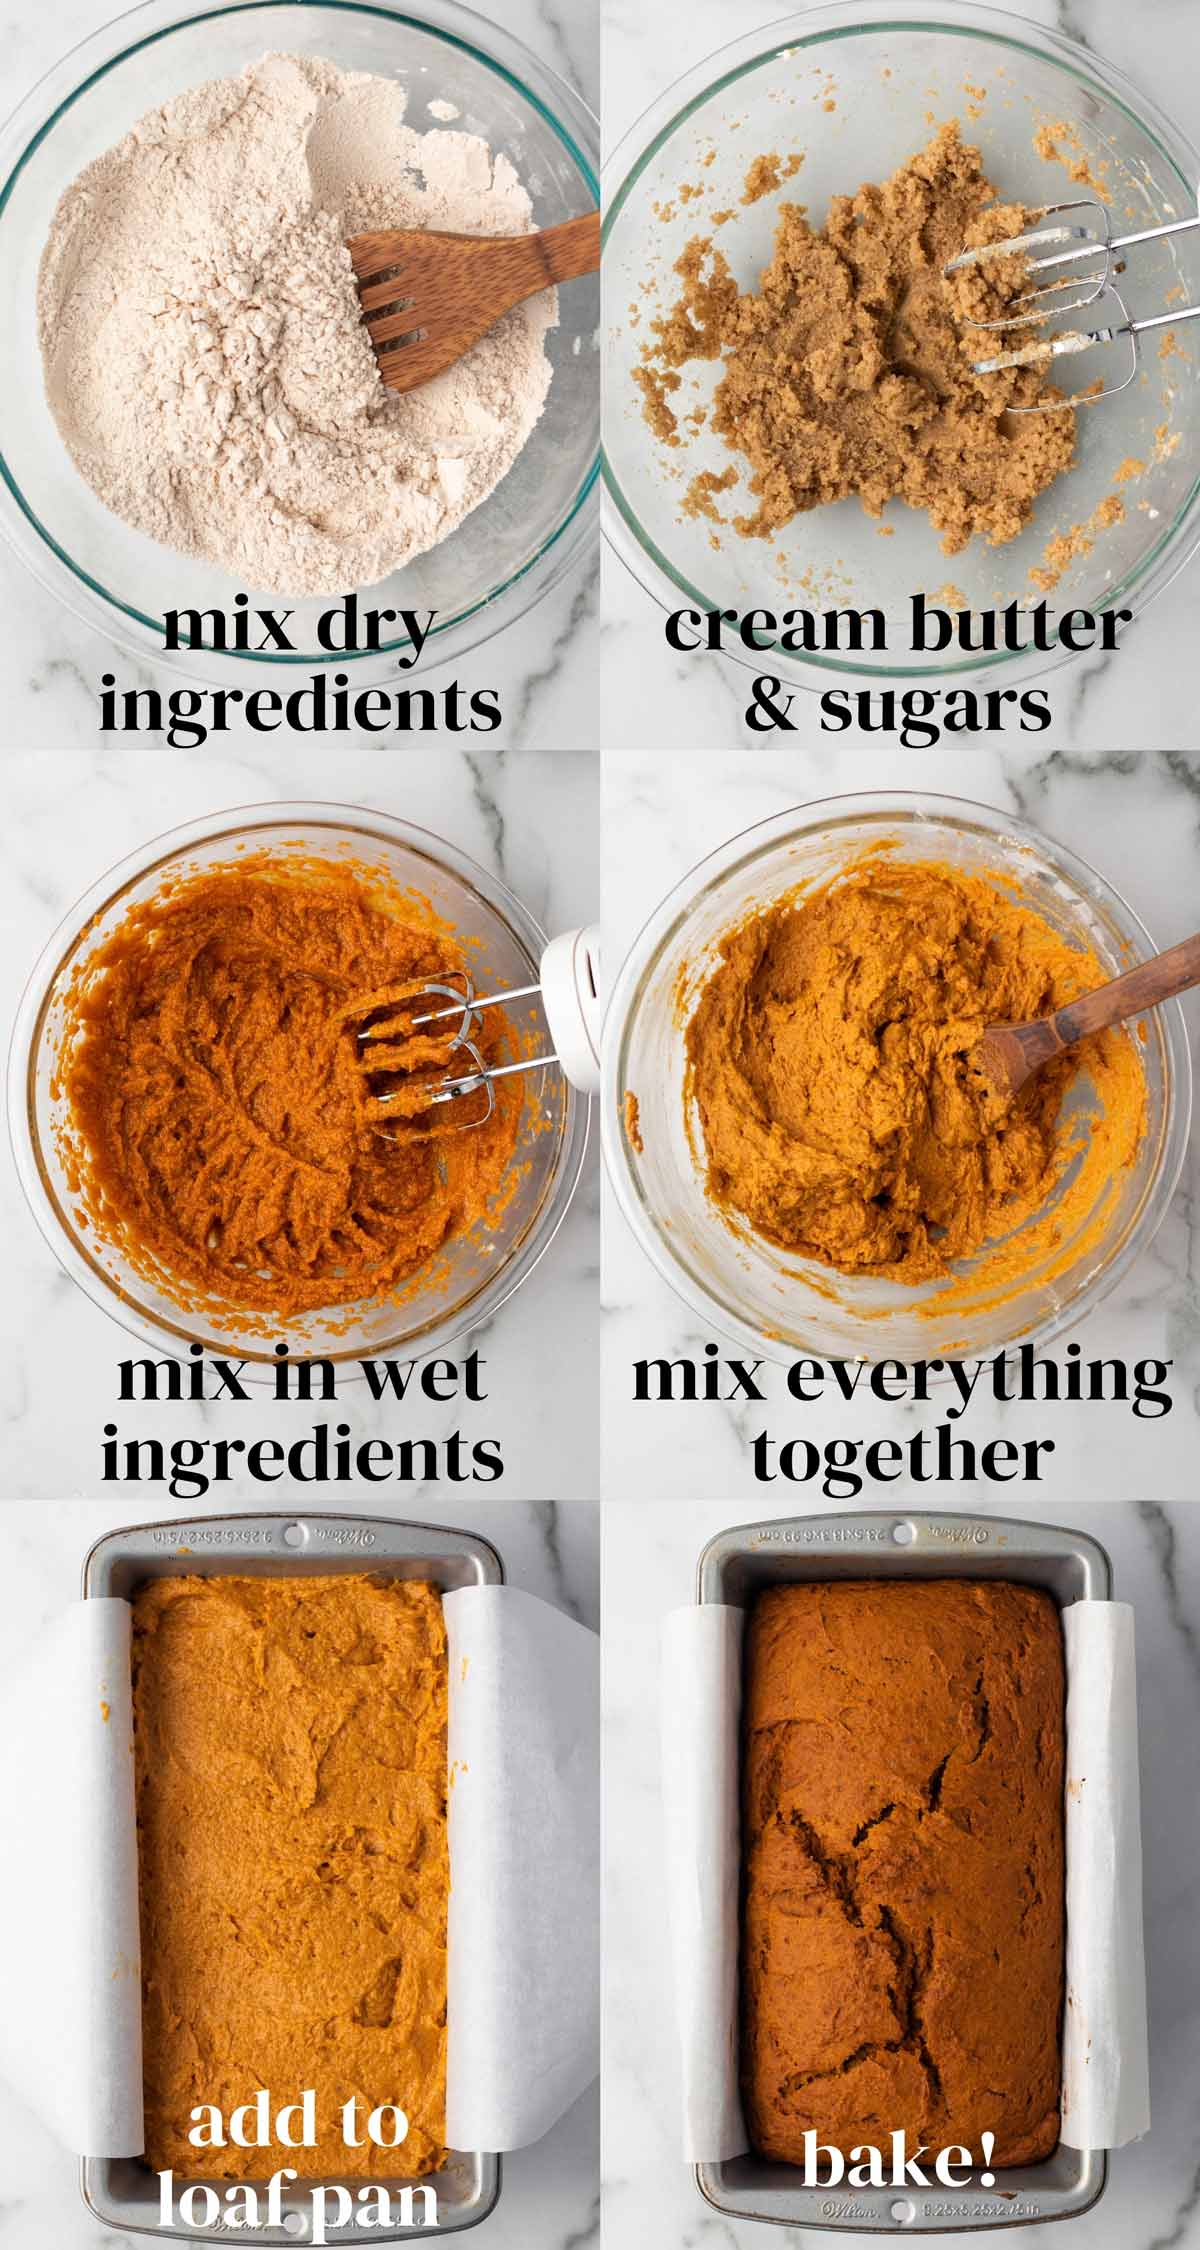 Step-by-step collage: 1) Mix dry ingredients. 2) Cream butter and sugars. 3) Mix in wet ingredients. 4) Mix everything together. 5) Add to loaf pan. 6) Bake!